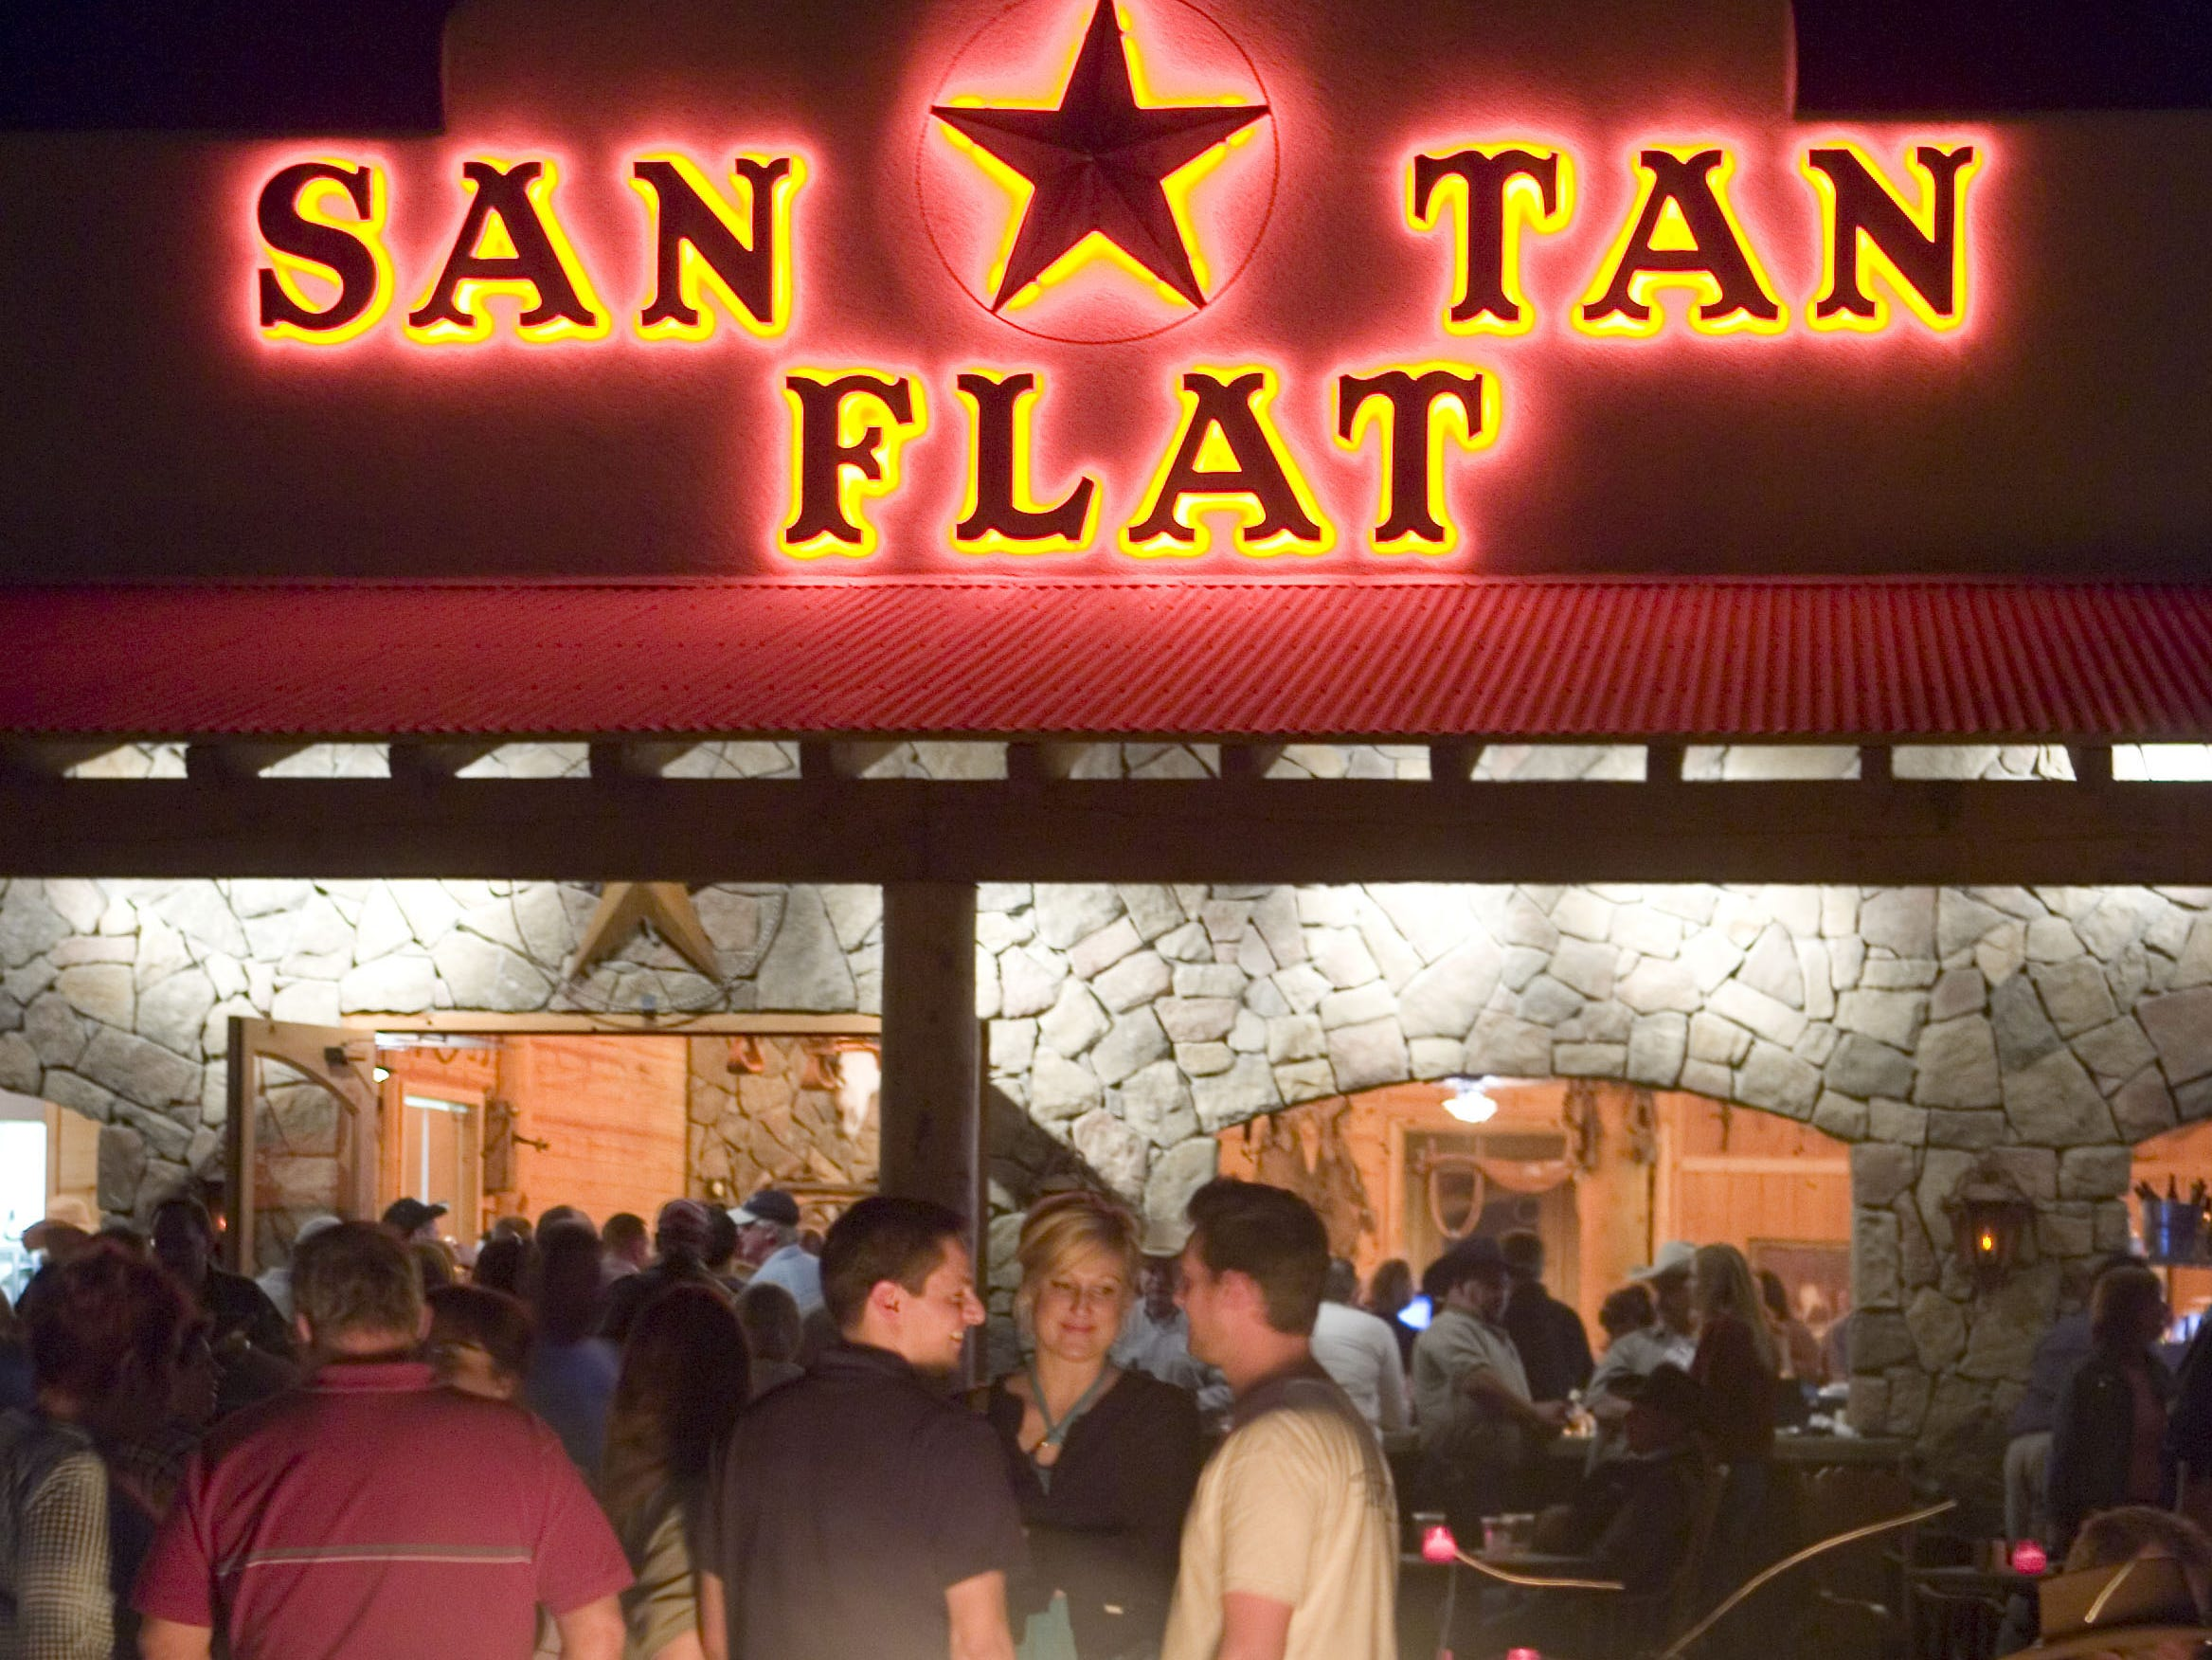 """San Tan Flat: Bummed about not camping at Country Thunder? Well, as the steakhouse's website states, it has """"all the fun of camping ... without having to sleep on the ground.""""San Tan Flat welcomes guests with an open-air bar filled with picnic tables and campfires forming a half-moon around a small stage.There's live music Wednesdays through Sundays, and it's a fun choice for families. Details:6185 W. Hunt Highway, Queen Creek. 480-882-2995, santanflat.com."""